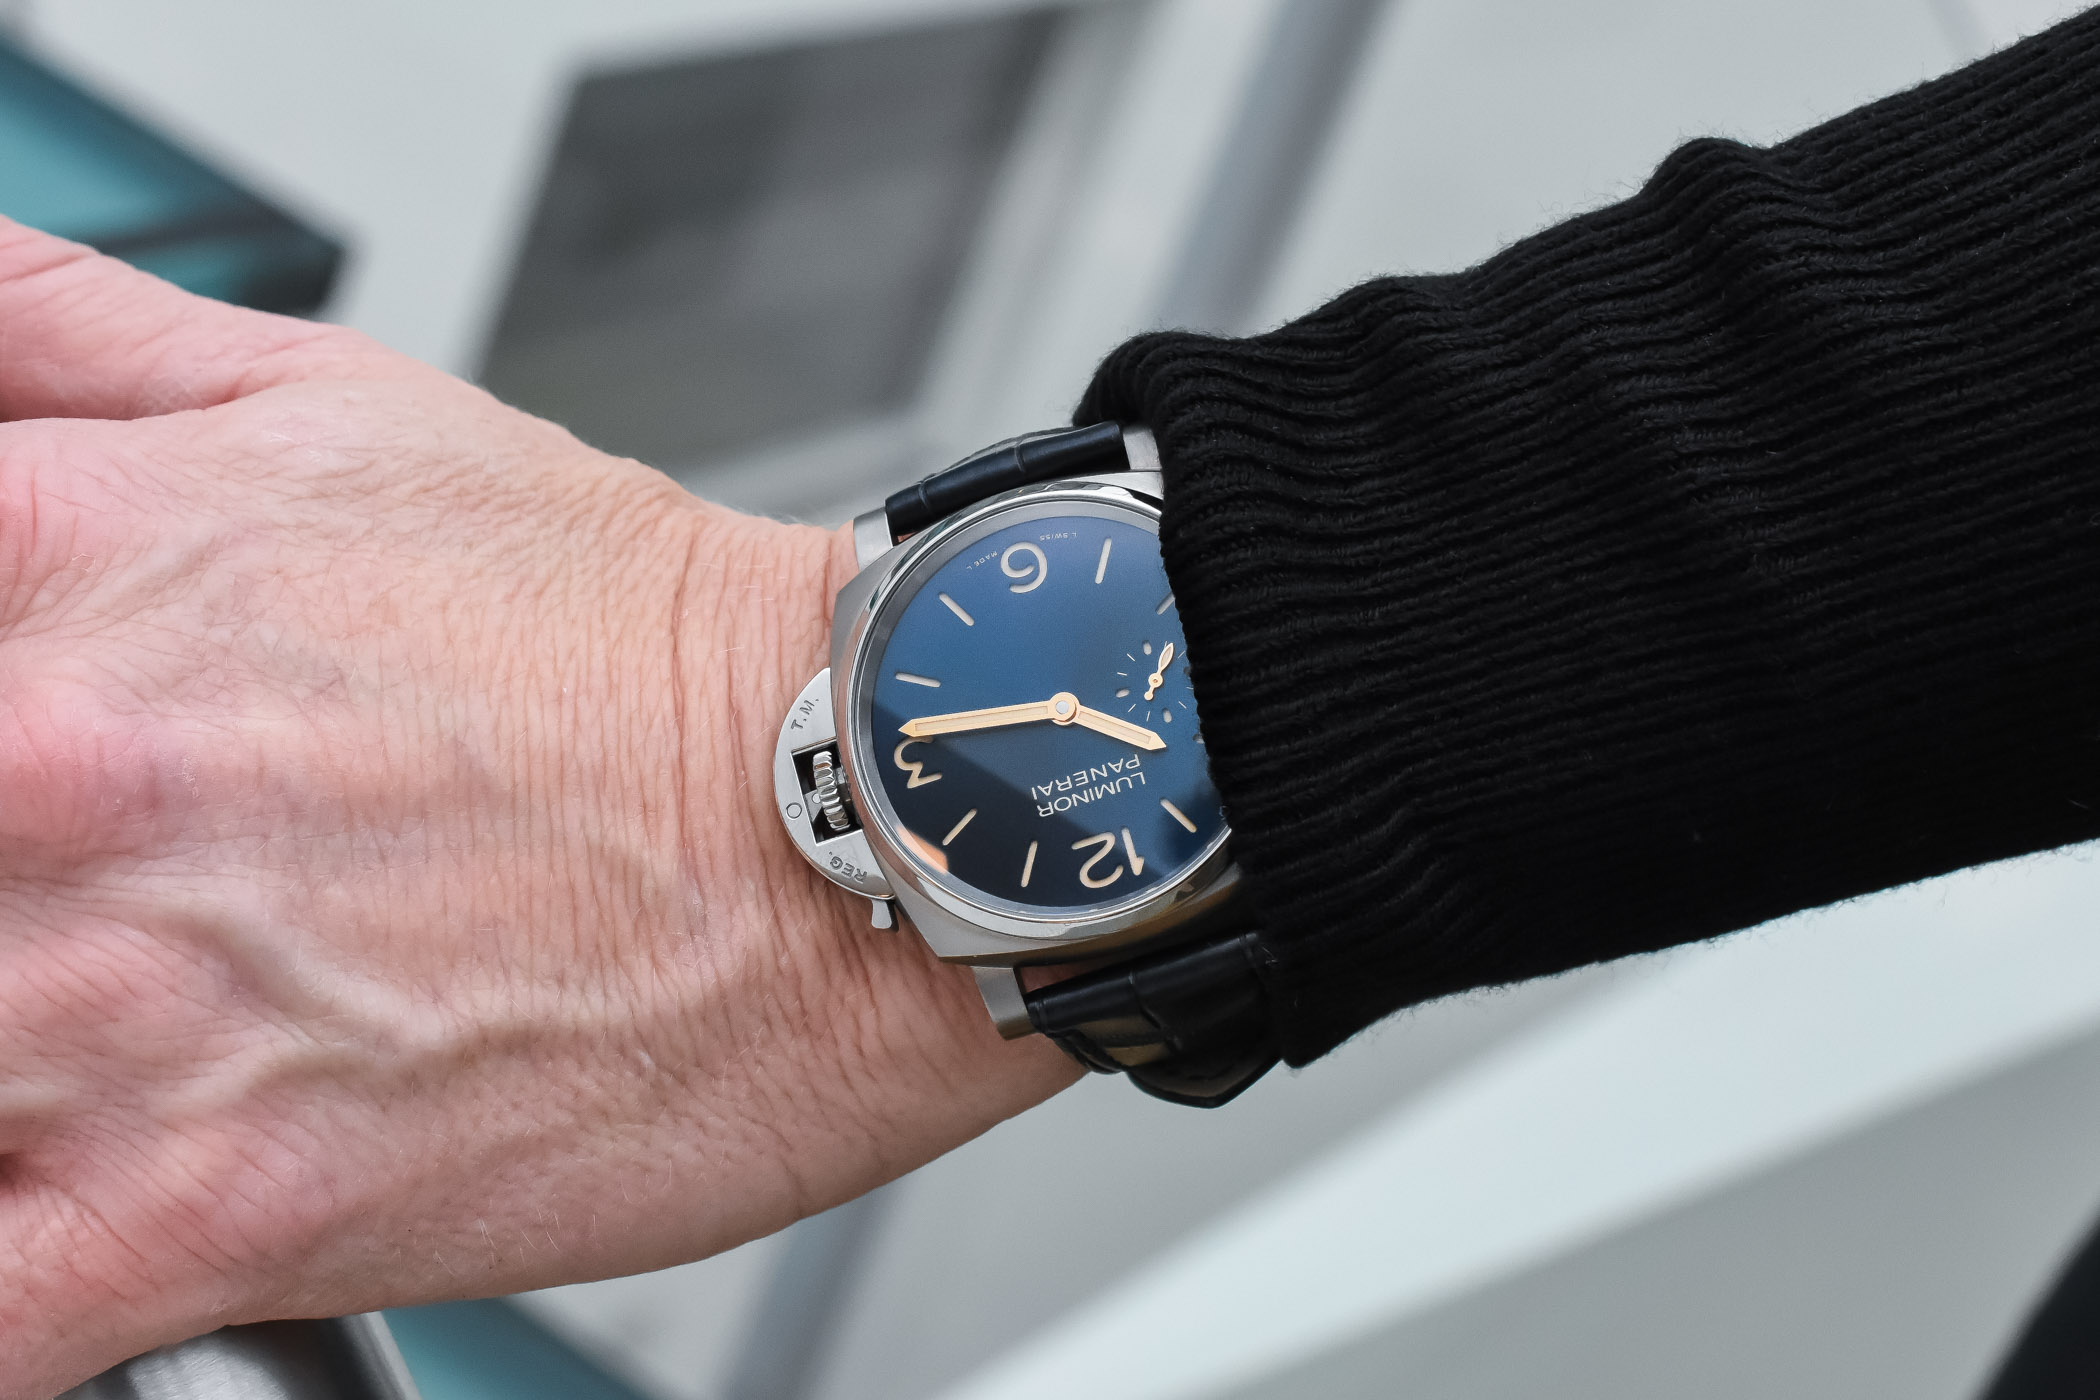 Panerai Luminor Due 3 Days Titanio 42mm Pam00728 Hands